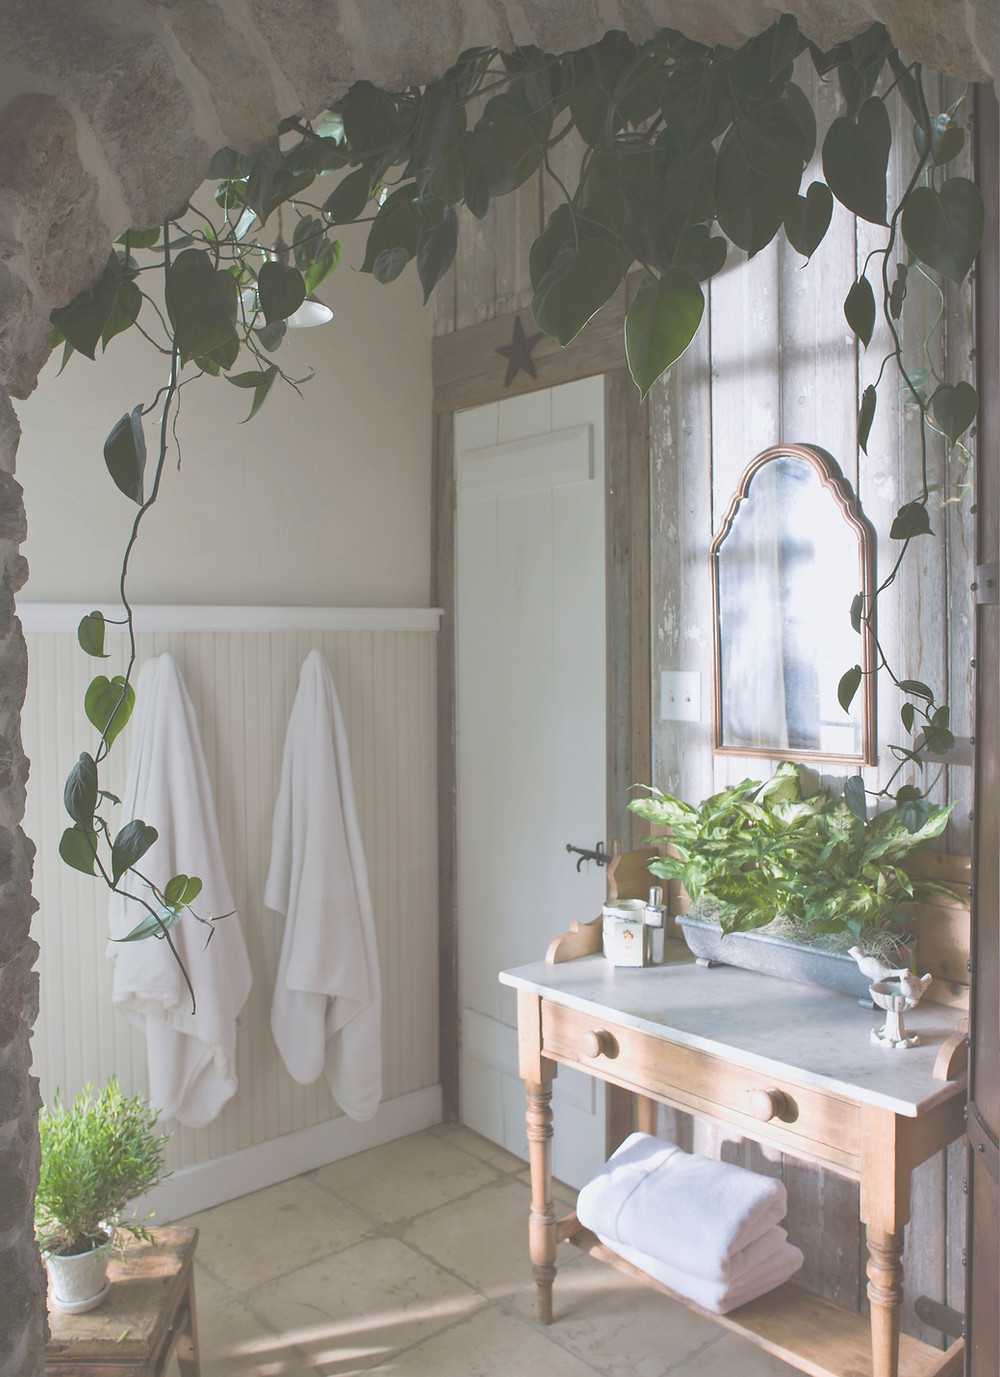 Fall in Love With Your Bathroom.